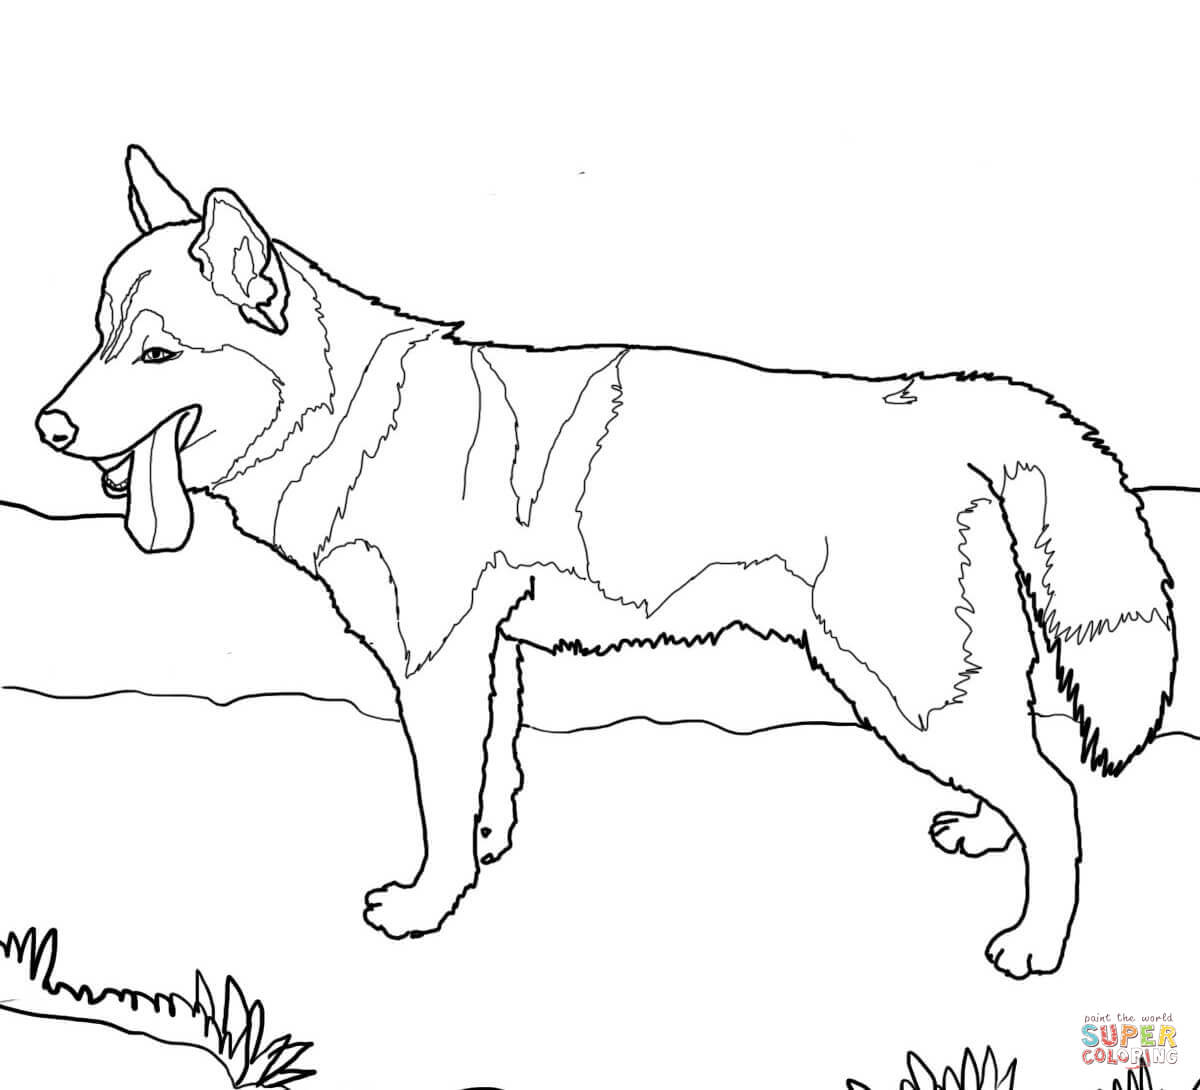 how to draw a police dog police dog drawing at getdrawings free download police how a dog draw to